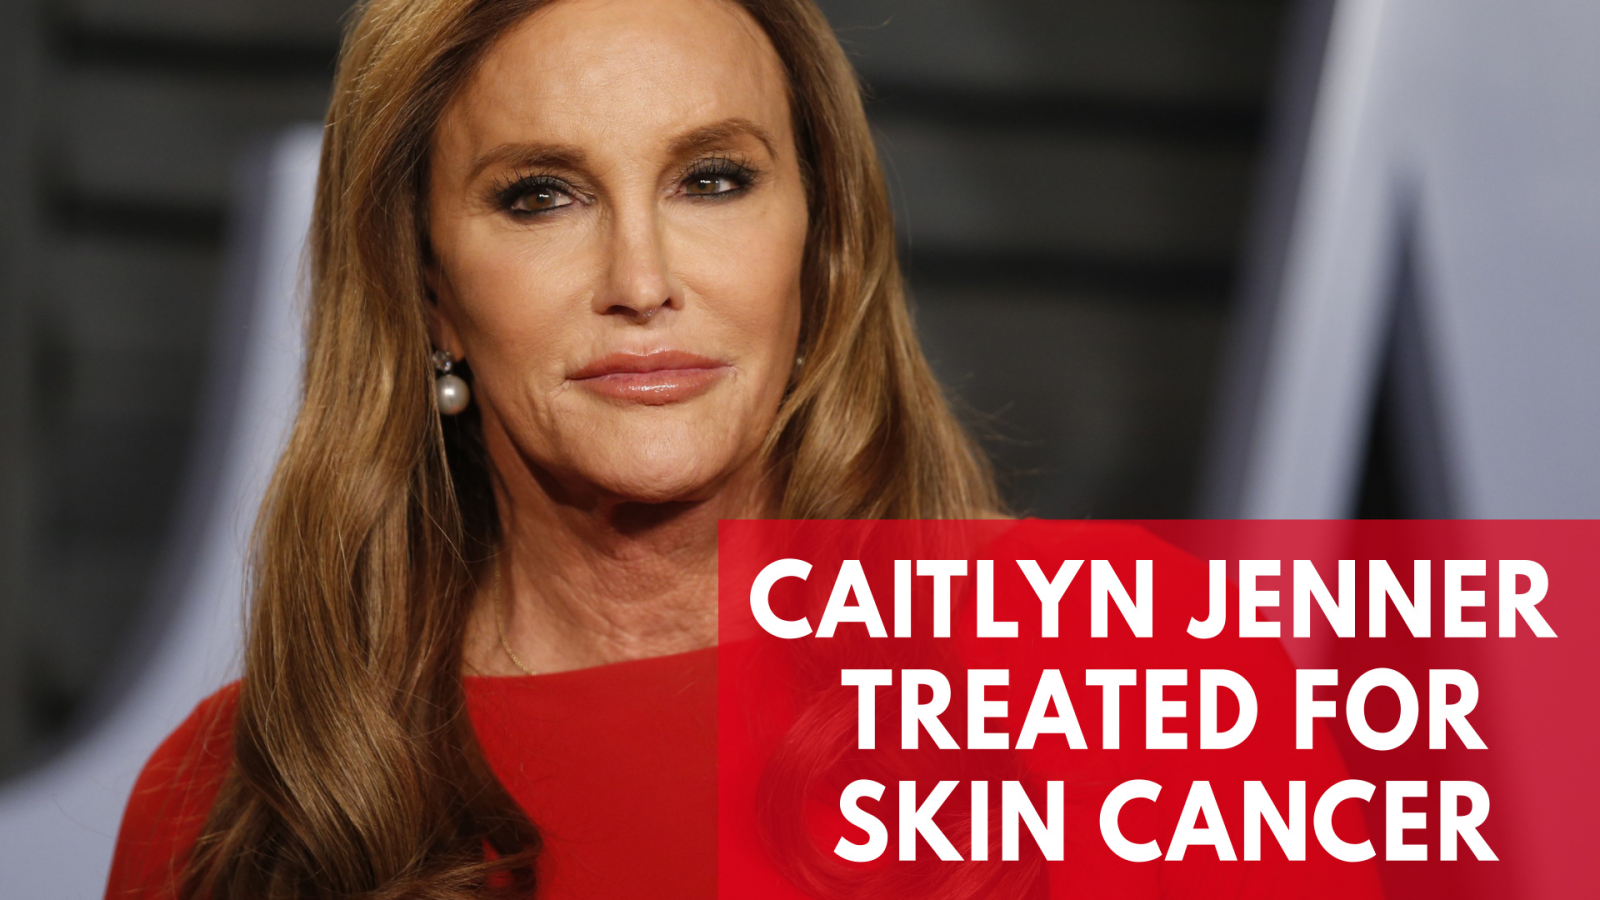 caitlyn-jenner-treated-for-skin-cancer